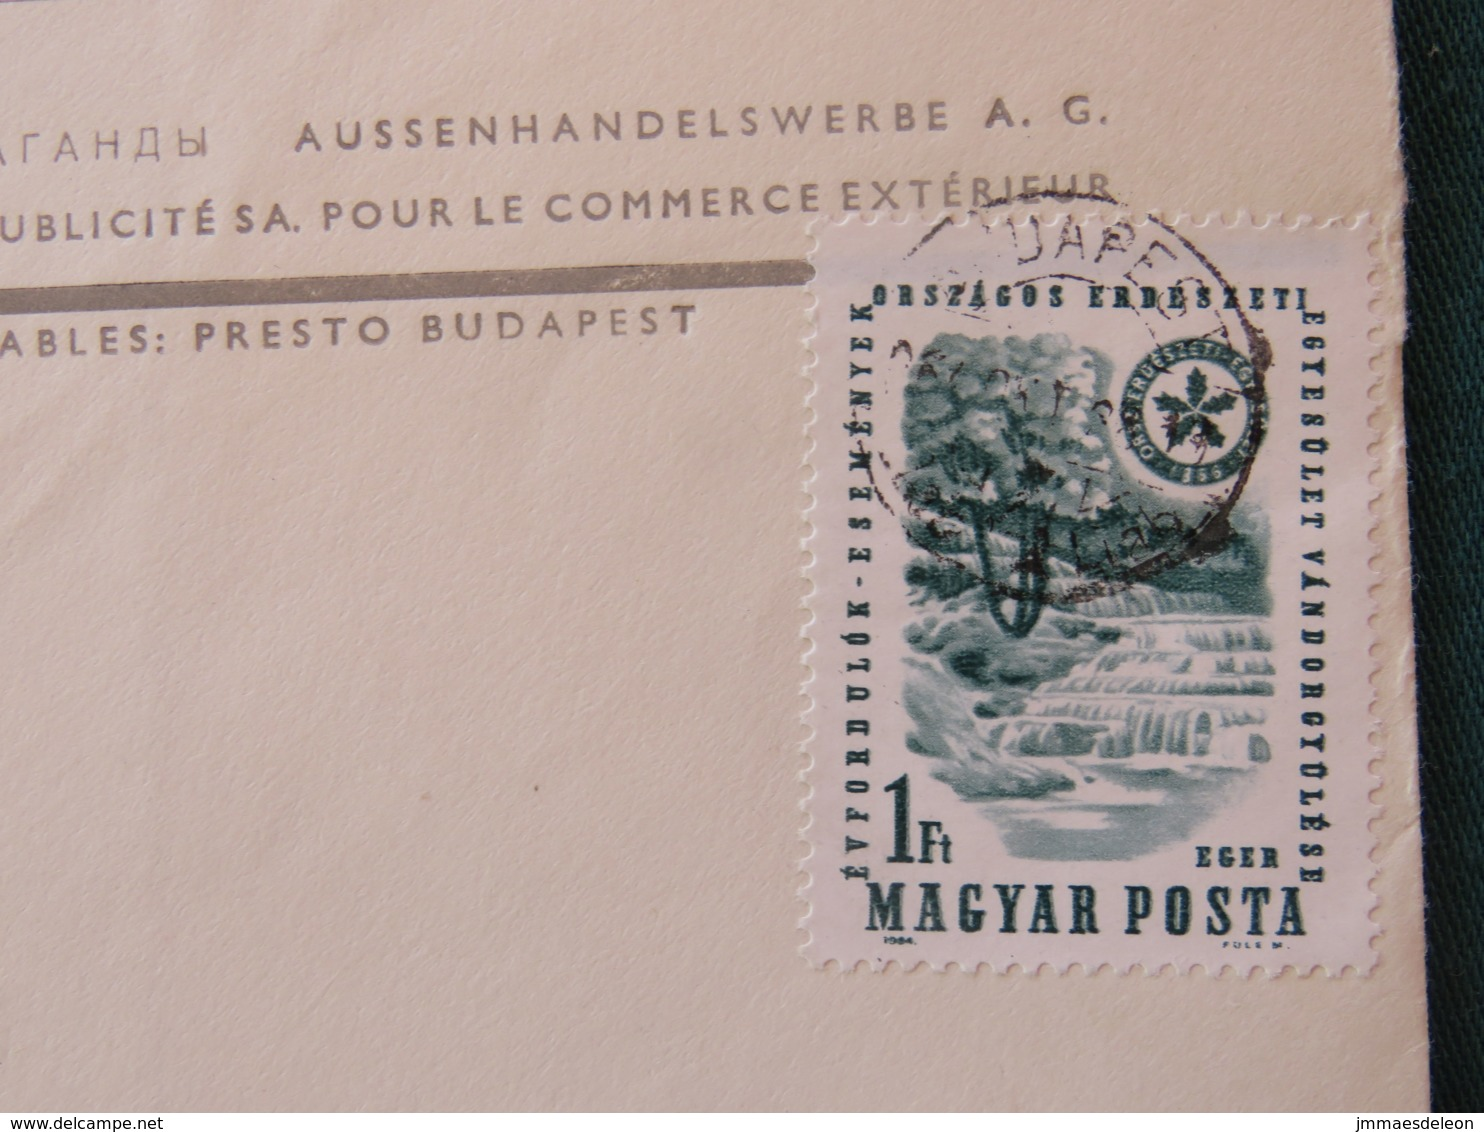 Hungary 1964 Cover From Budapest - Waterfalls - Hungary